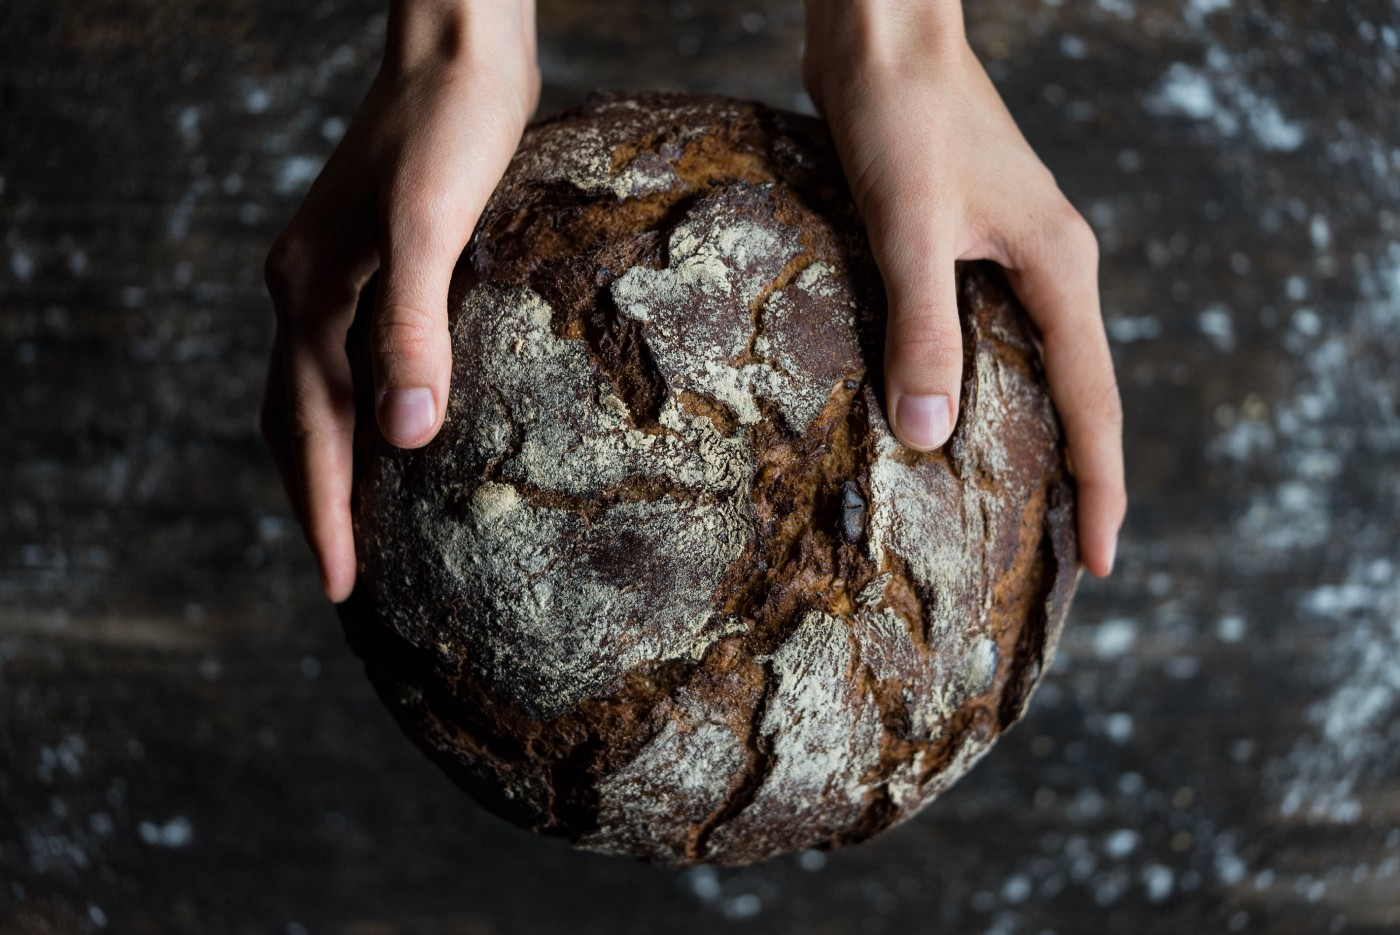 Hands hold a browned and crumpled ball resembeling the earth